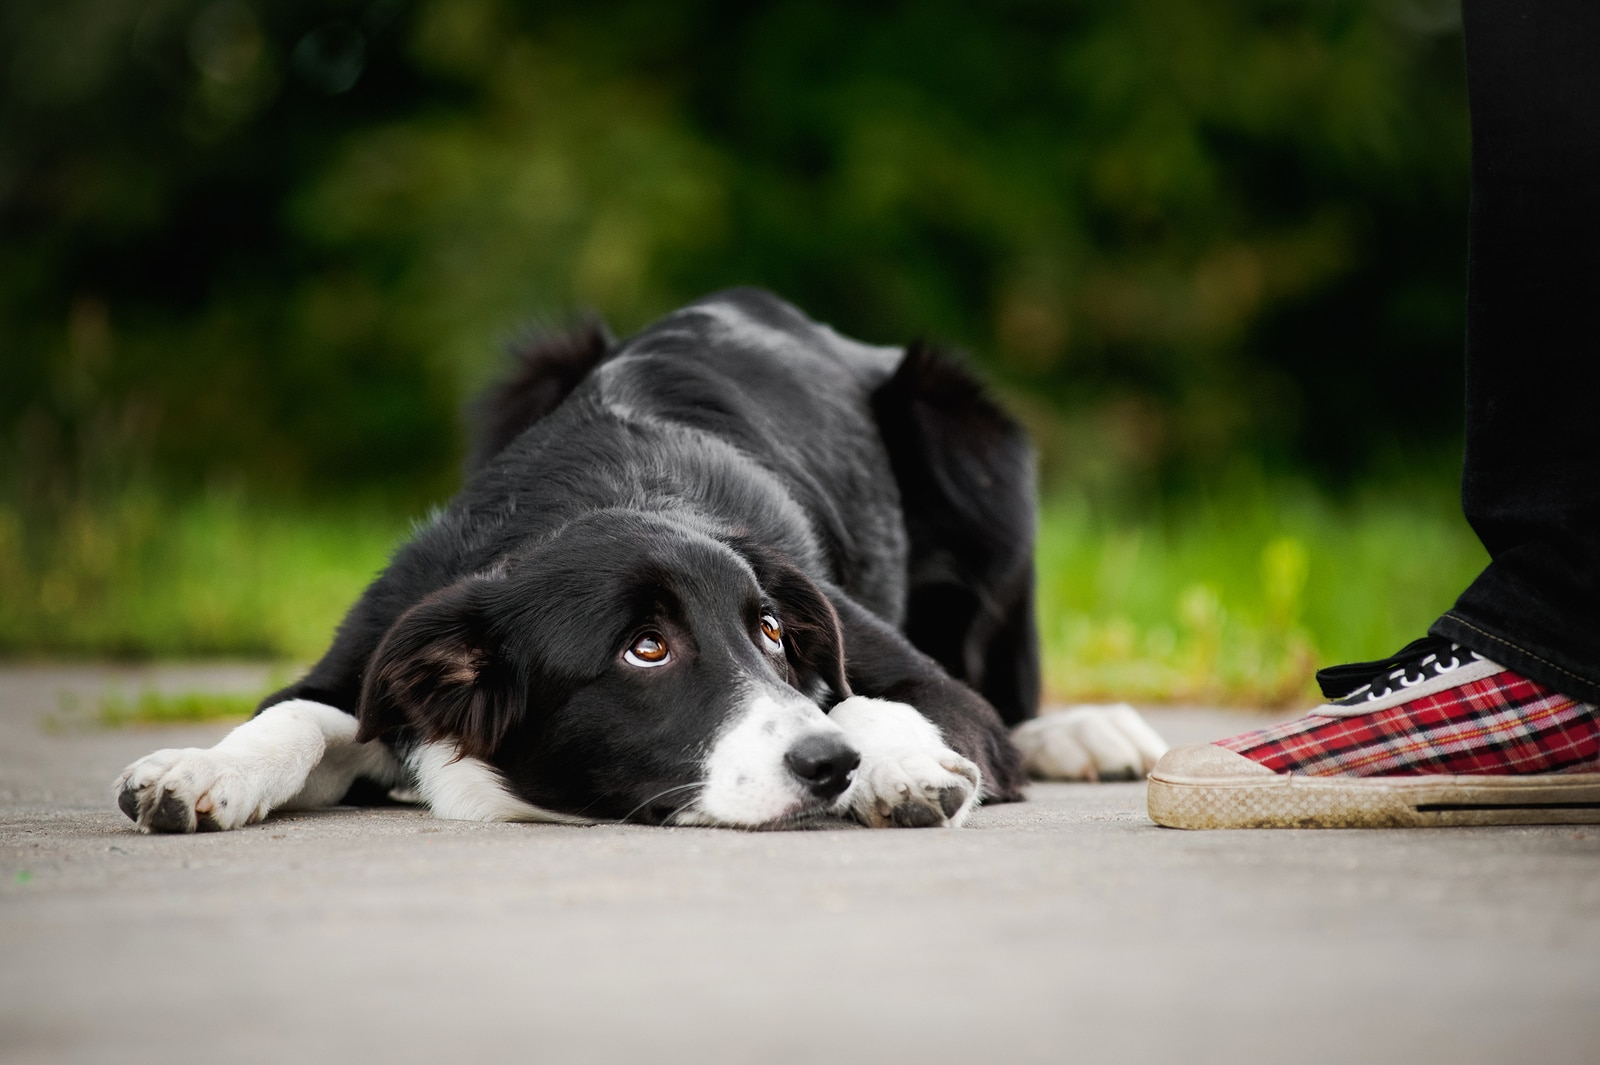 Black and white border collie looking up feeling ashamed while lying next to person's foot.